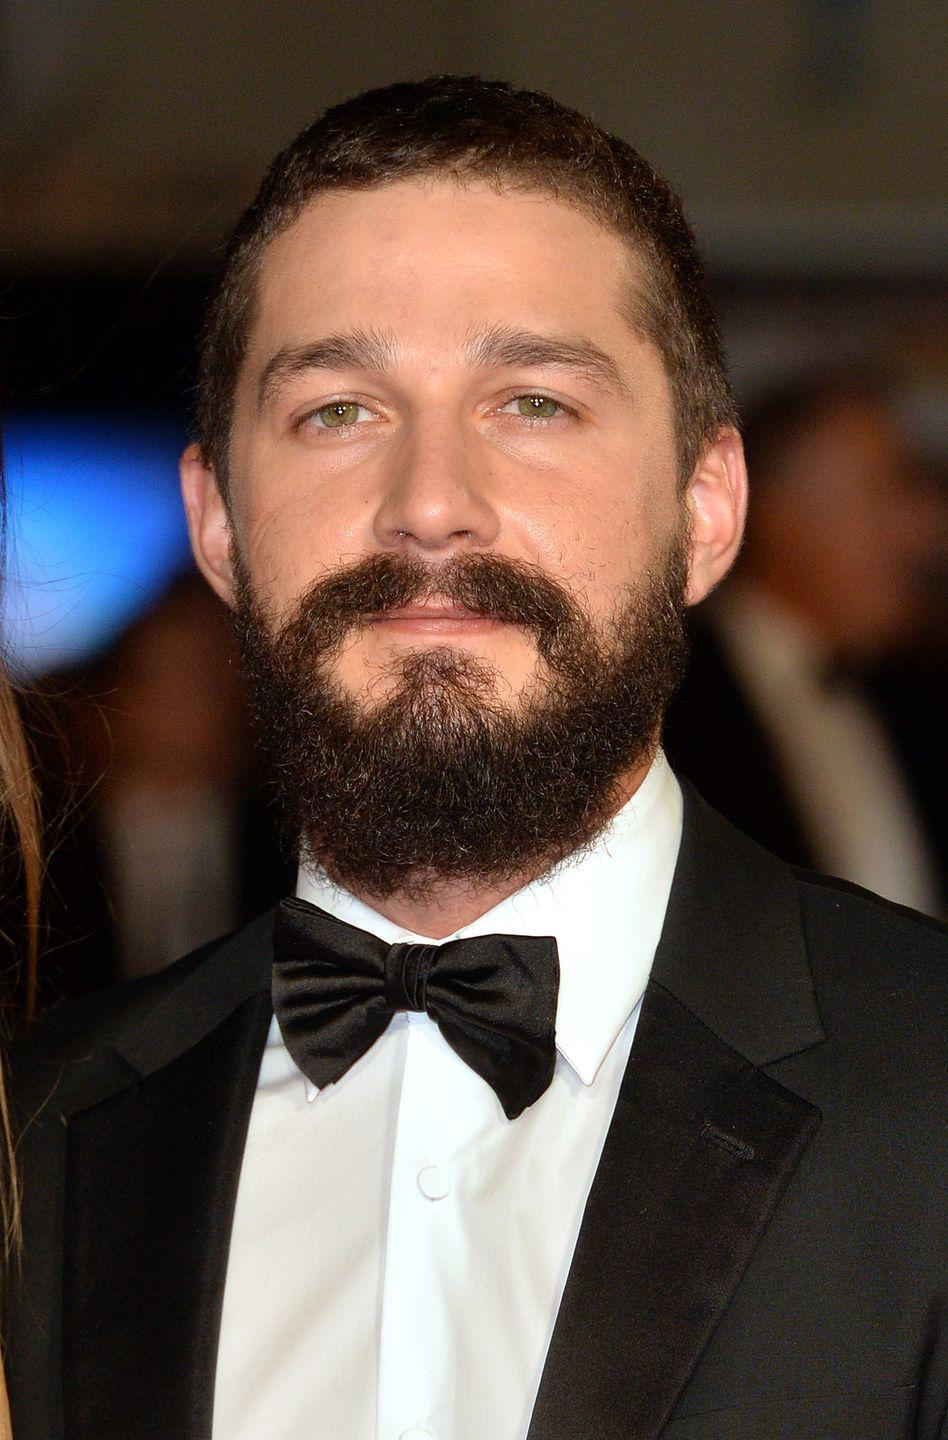 "<p>LaBeouf played Mutt in the 2008 film, <em>Indiana Jones, </em>and he's open about not feeling he did his best work. ""I feel like I dropped the ball on the legacy that people loved and cherished,"" he told the <a href=""http://latimesblogs.latimes.com/movies/2010/05/shia-labeouf-wall-street-2-indiana-jones-steven-spielberg.html"" rel=""nofollow noopener"" target=""_blank"" data-ylk=""slk:LA Times"" class=""link rapid-noclick-resp""><em>LA Times</em></a>. ""You get to monkey-swinging and things like that and you can blame it on the writer and you can blame it on Steven [Spielberg]. But the actor's job is to make it come alive and make it work, and I couldn't do it. So that's my fault. Simple."" LaBeouf's character won't be returning for a sequel. </p>"